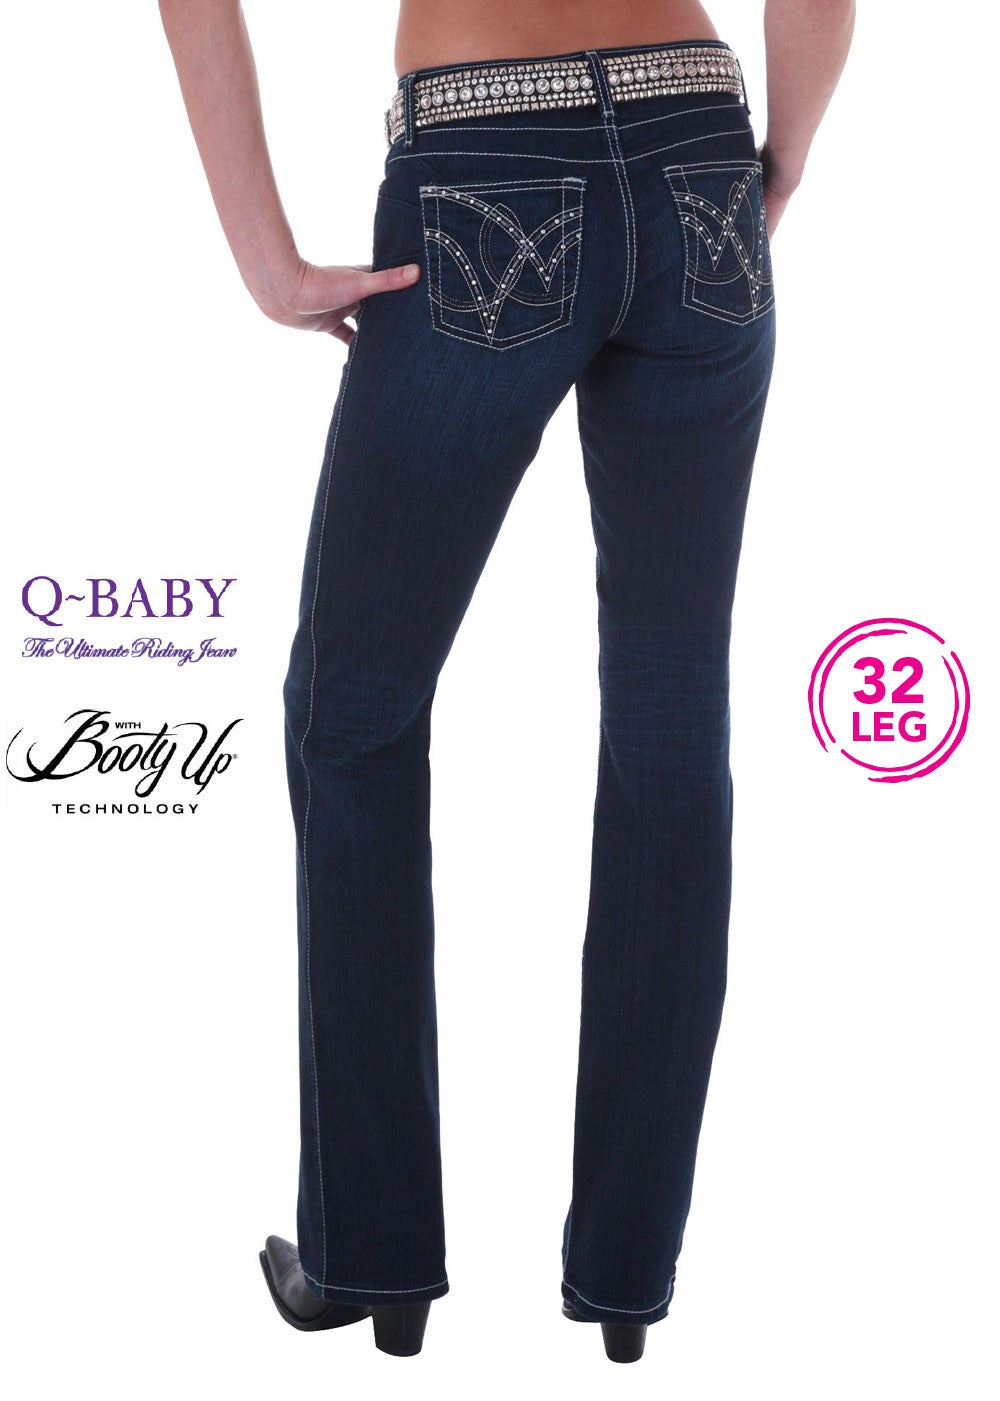 Wrangler | Womens | Jeans | Waist Low | Bootcut | 32"